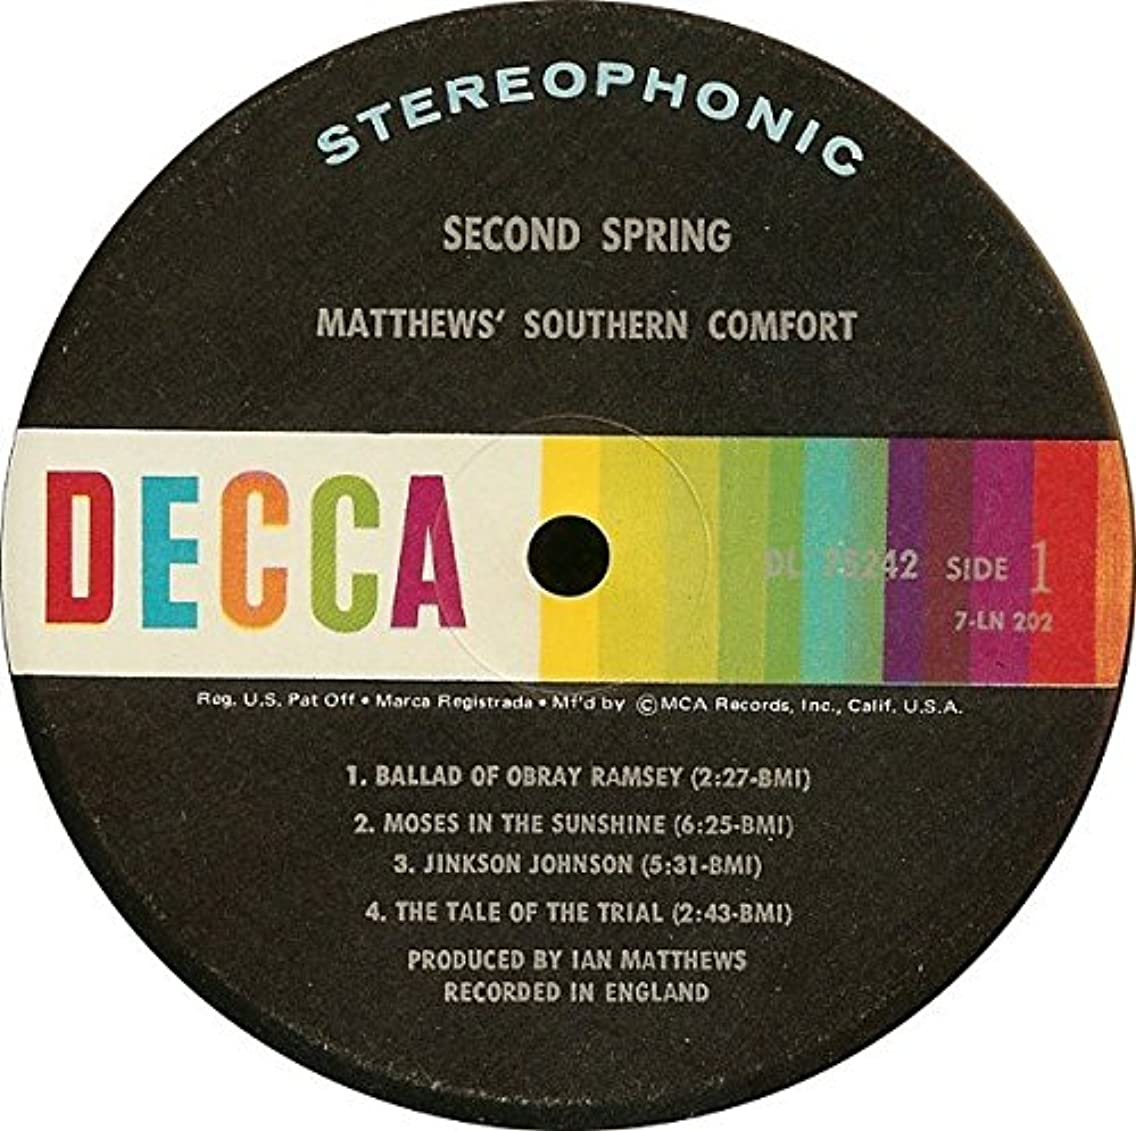 Matthews' Southern Comfort lp second spring